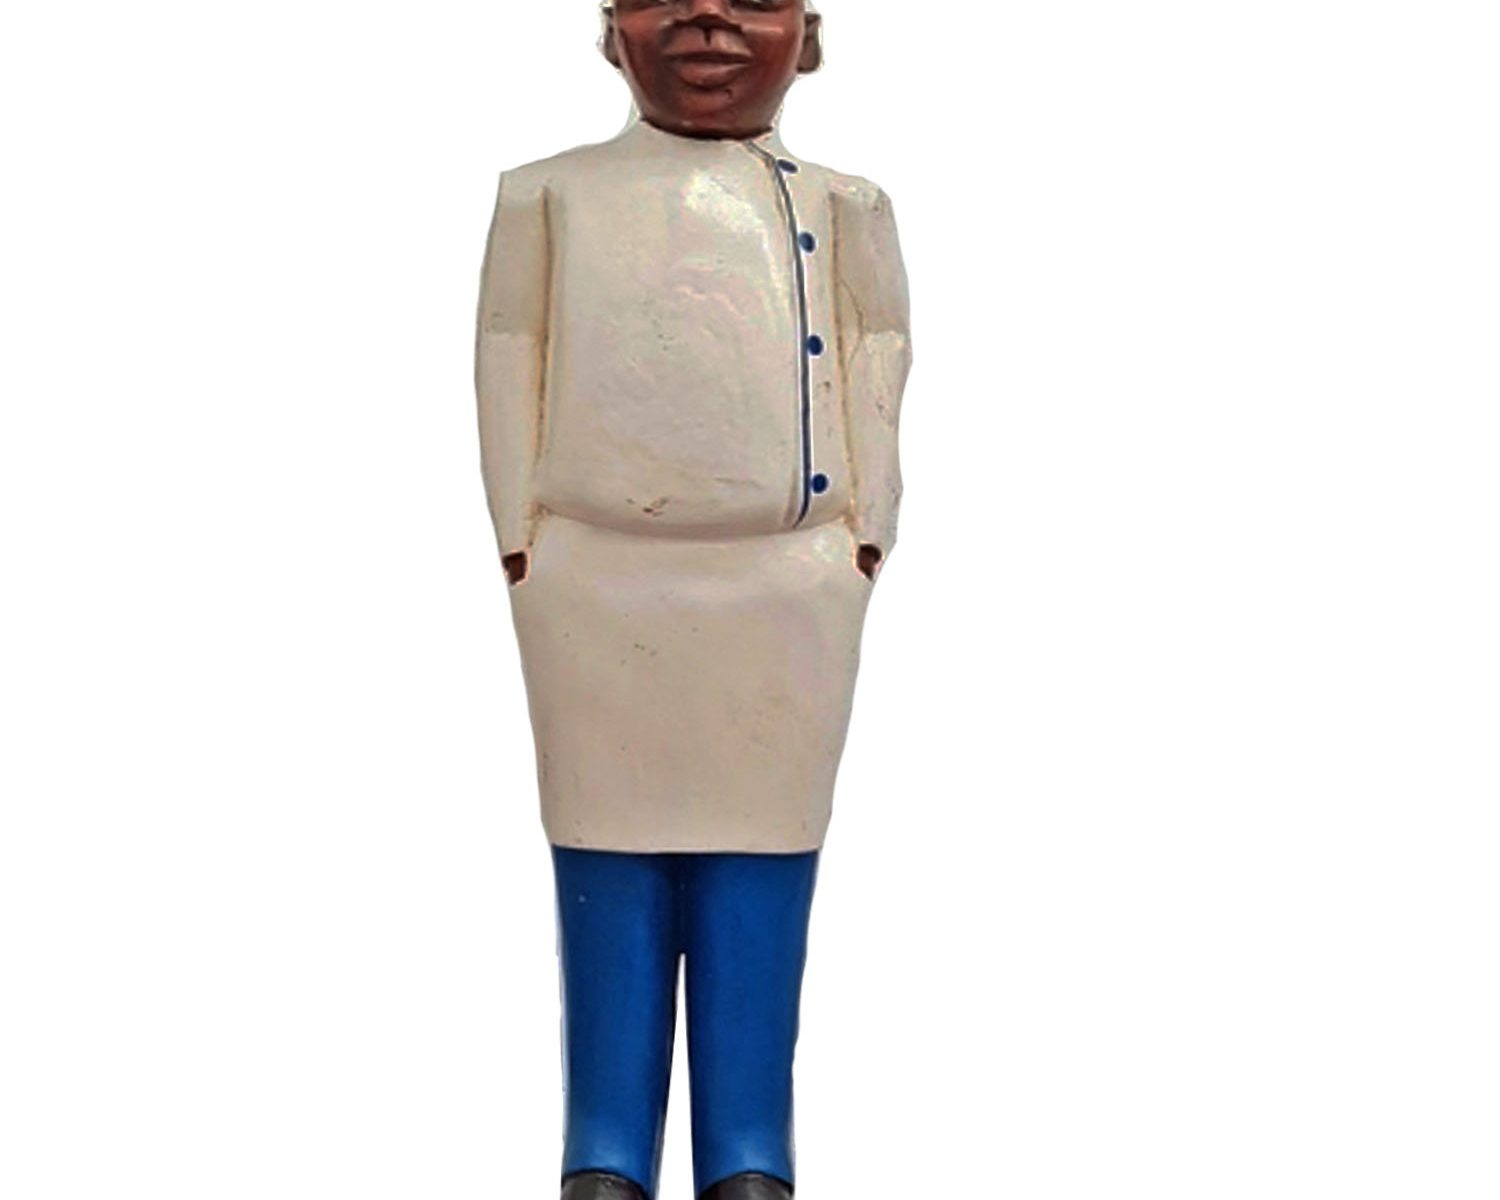 AFRICAN COLONIAL FIGURE CHEF